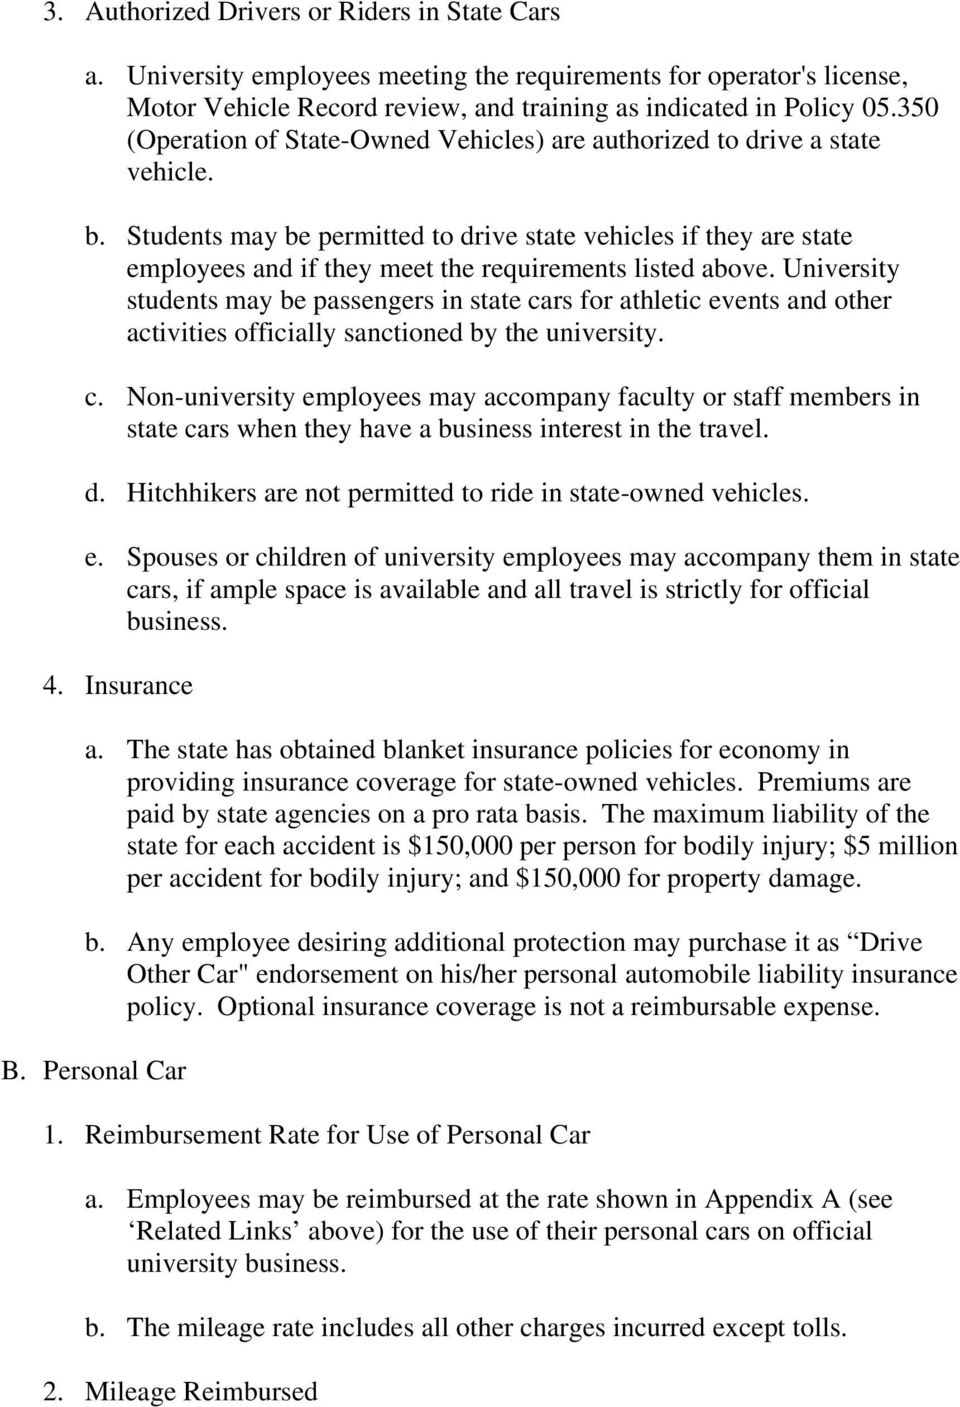 Students may be permitted to drive state vehicles if they are state employees and if they meet the requirements listed above.